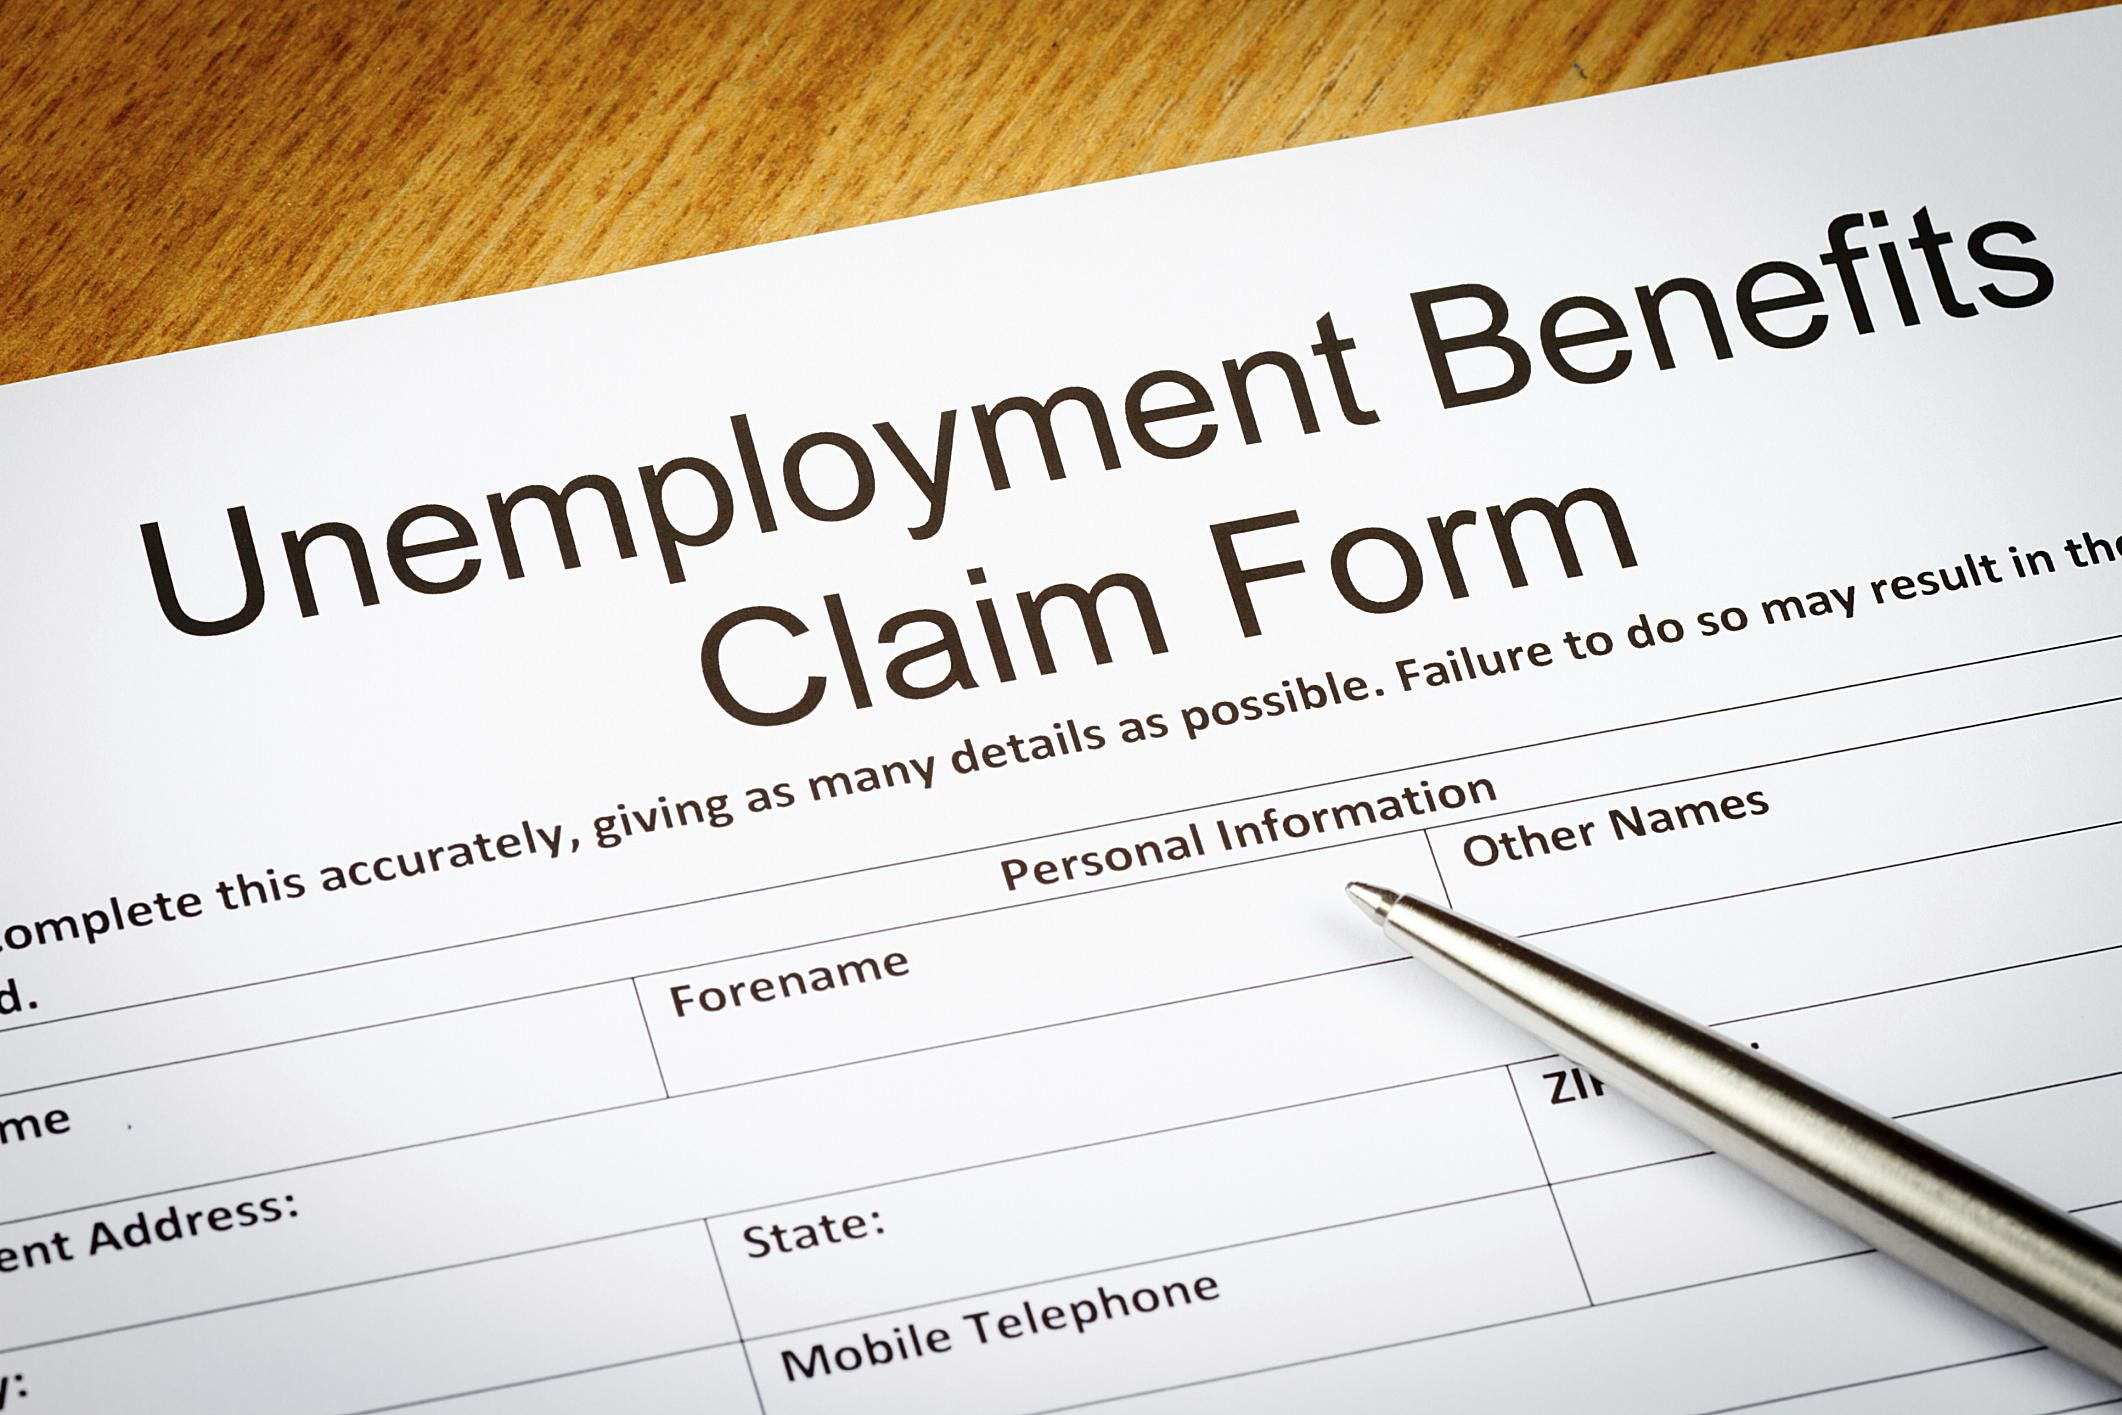 Information Required to File an Unemployment Claim